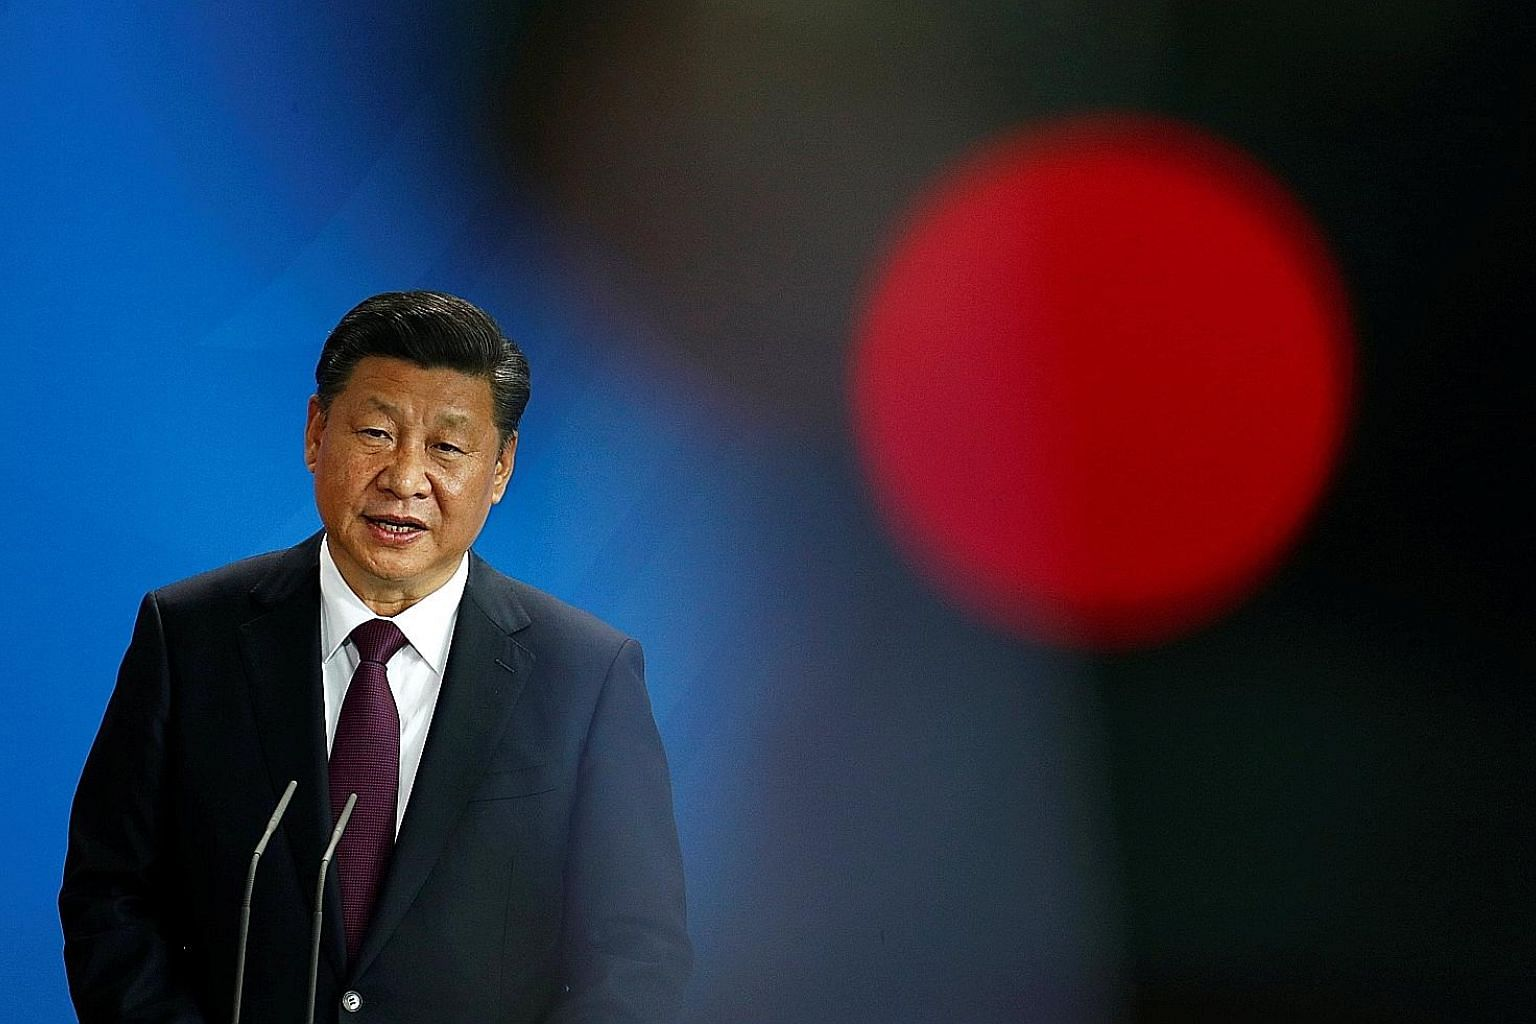 Chinese President Xi Jinping told US President Donald Trump that it was in the interests of China and the US to achieve denuclearisation of the Korean peninsula.